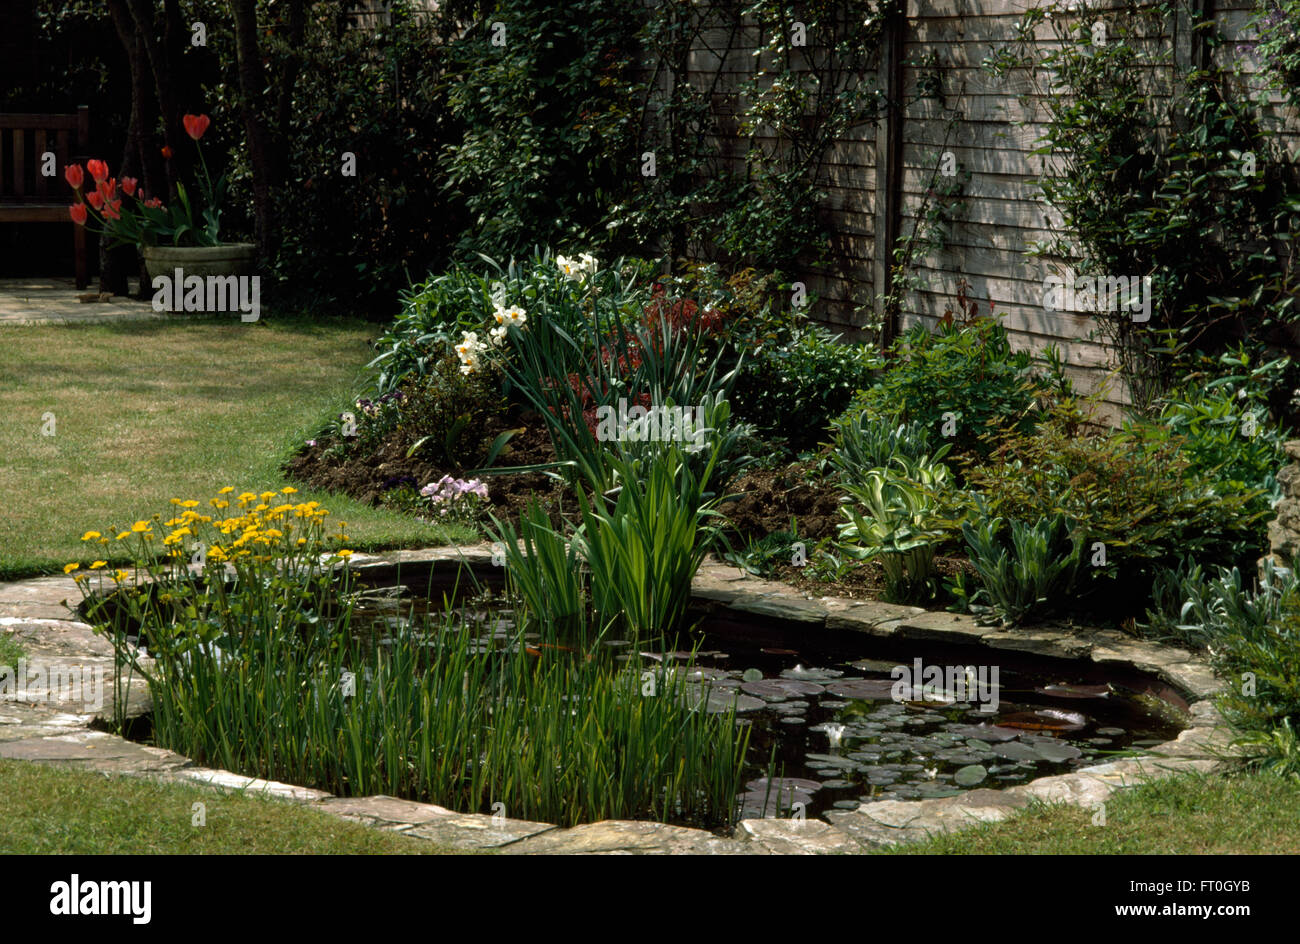 Stone paved edging around a curved pond with yellow for Garden pond edging